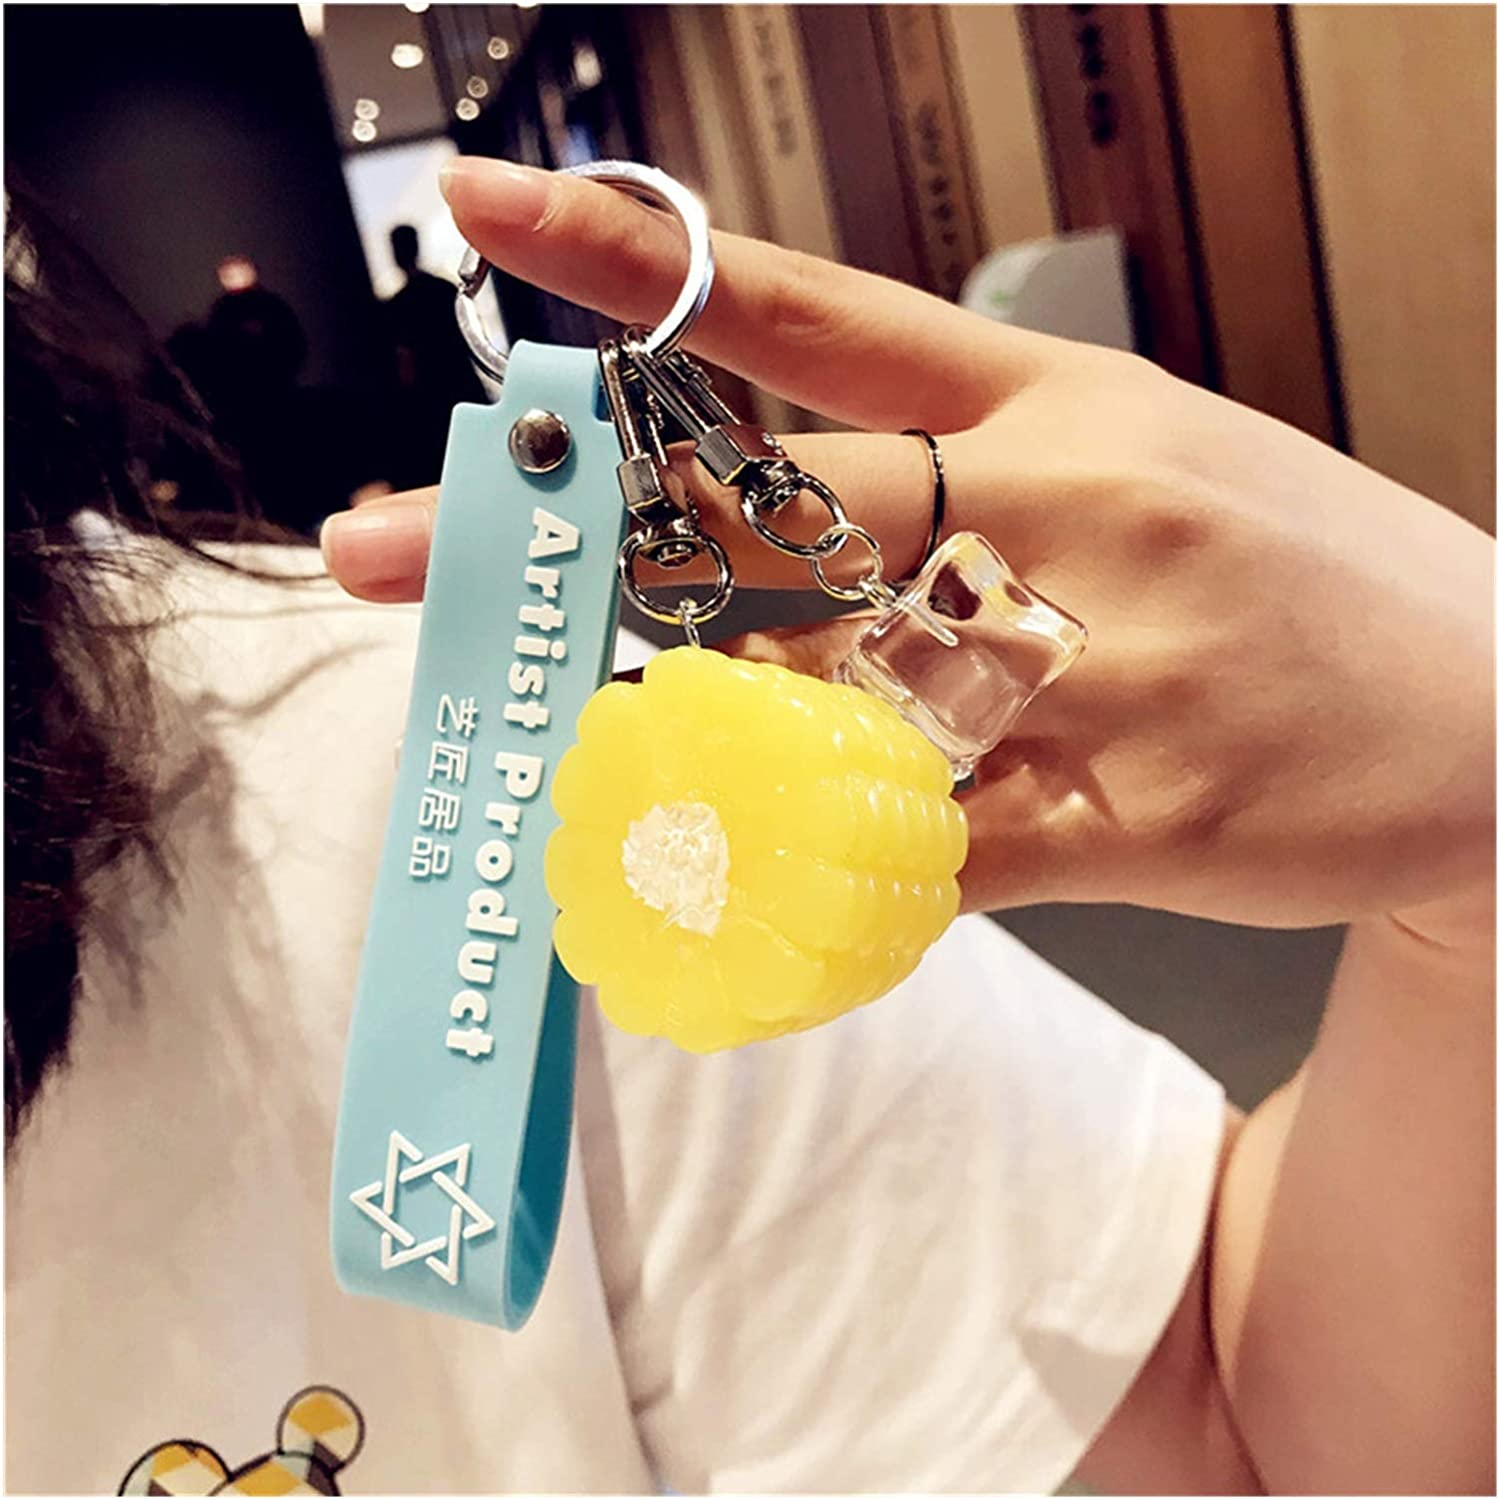 Muchengy Keyring Imitation Food Keychain French Fries Chicken Nuggets Fried Chicken Leg Food Pendant Children's Toy (Color : 3)